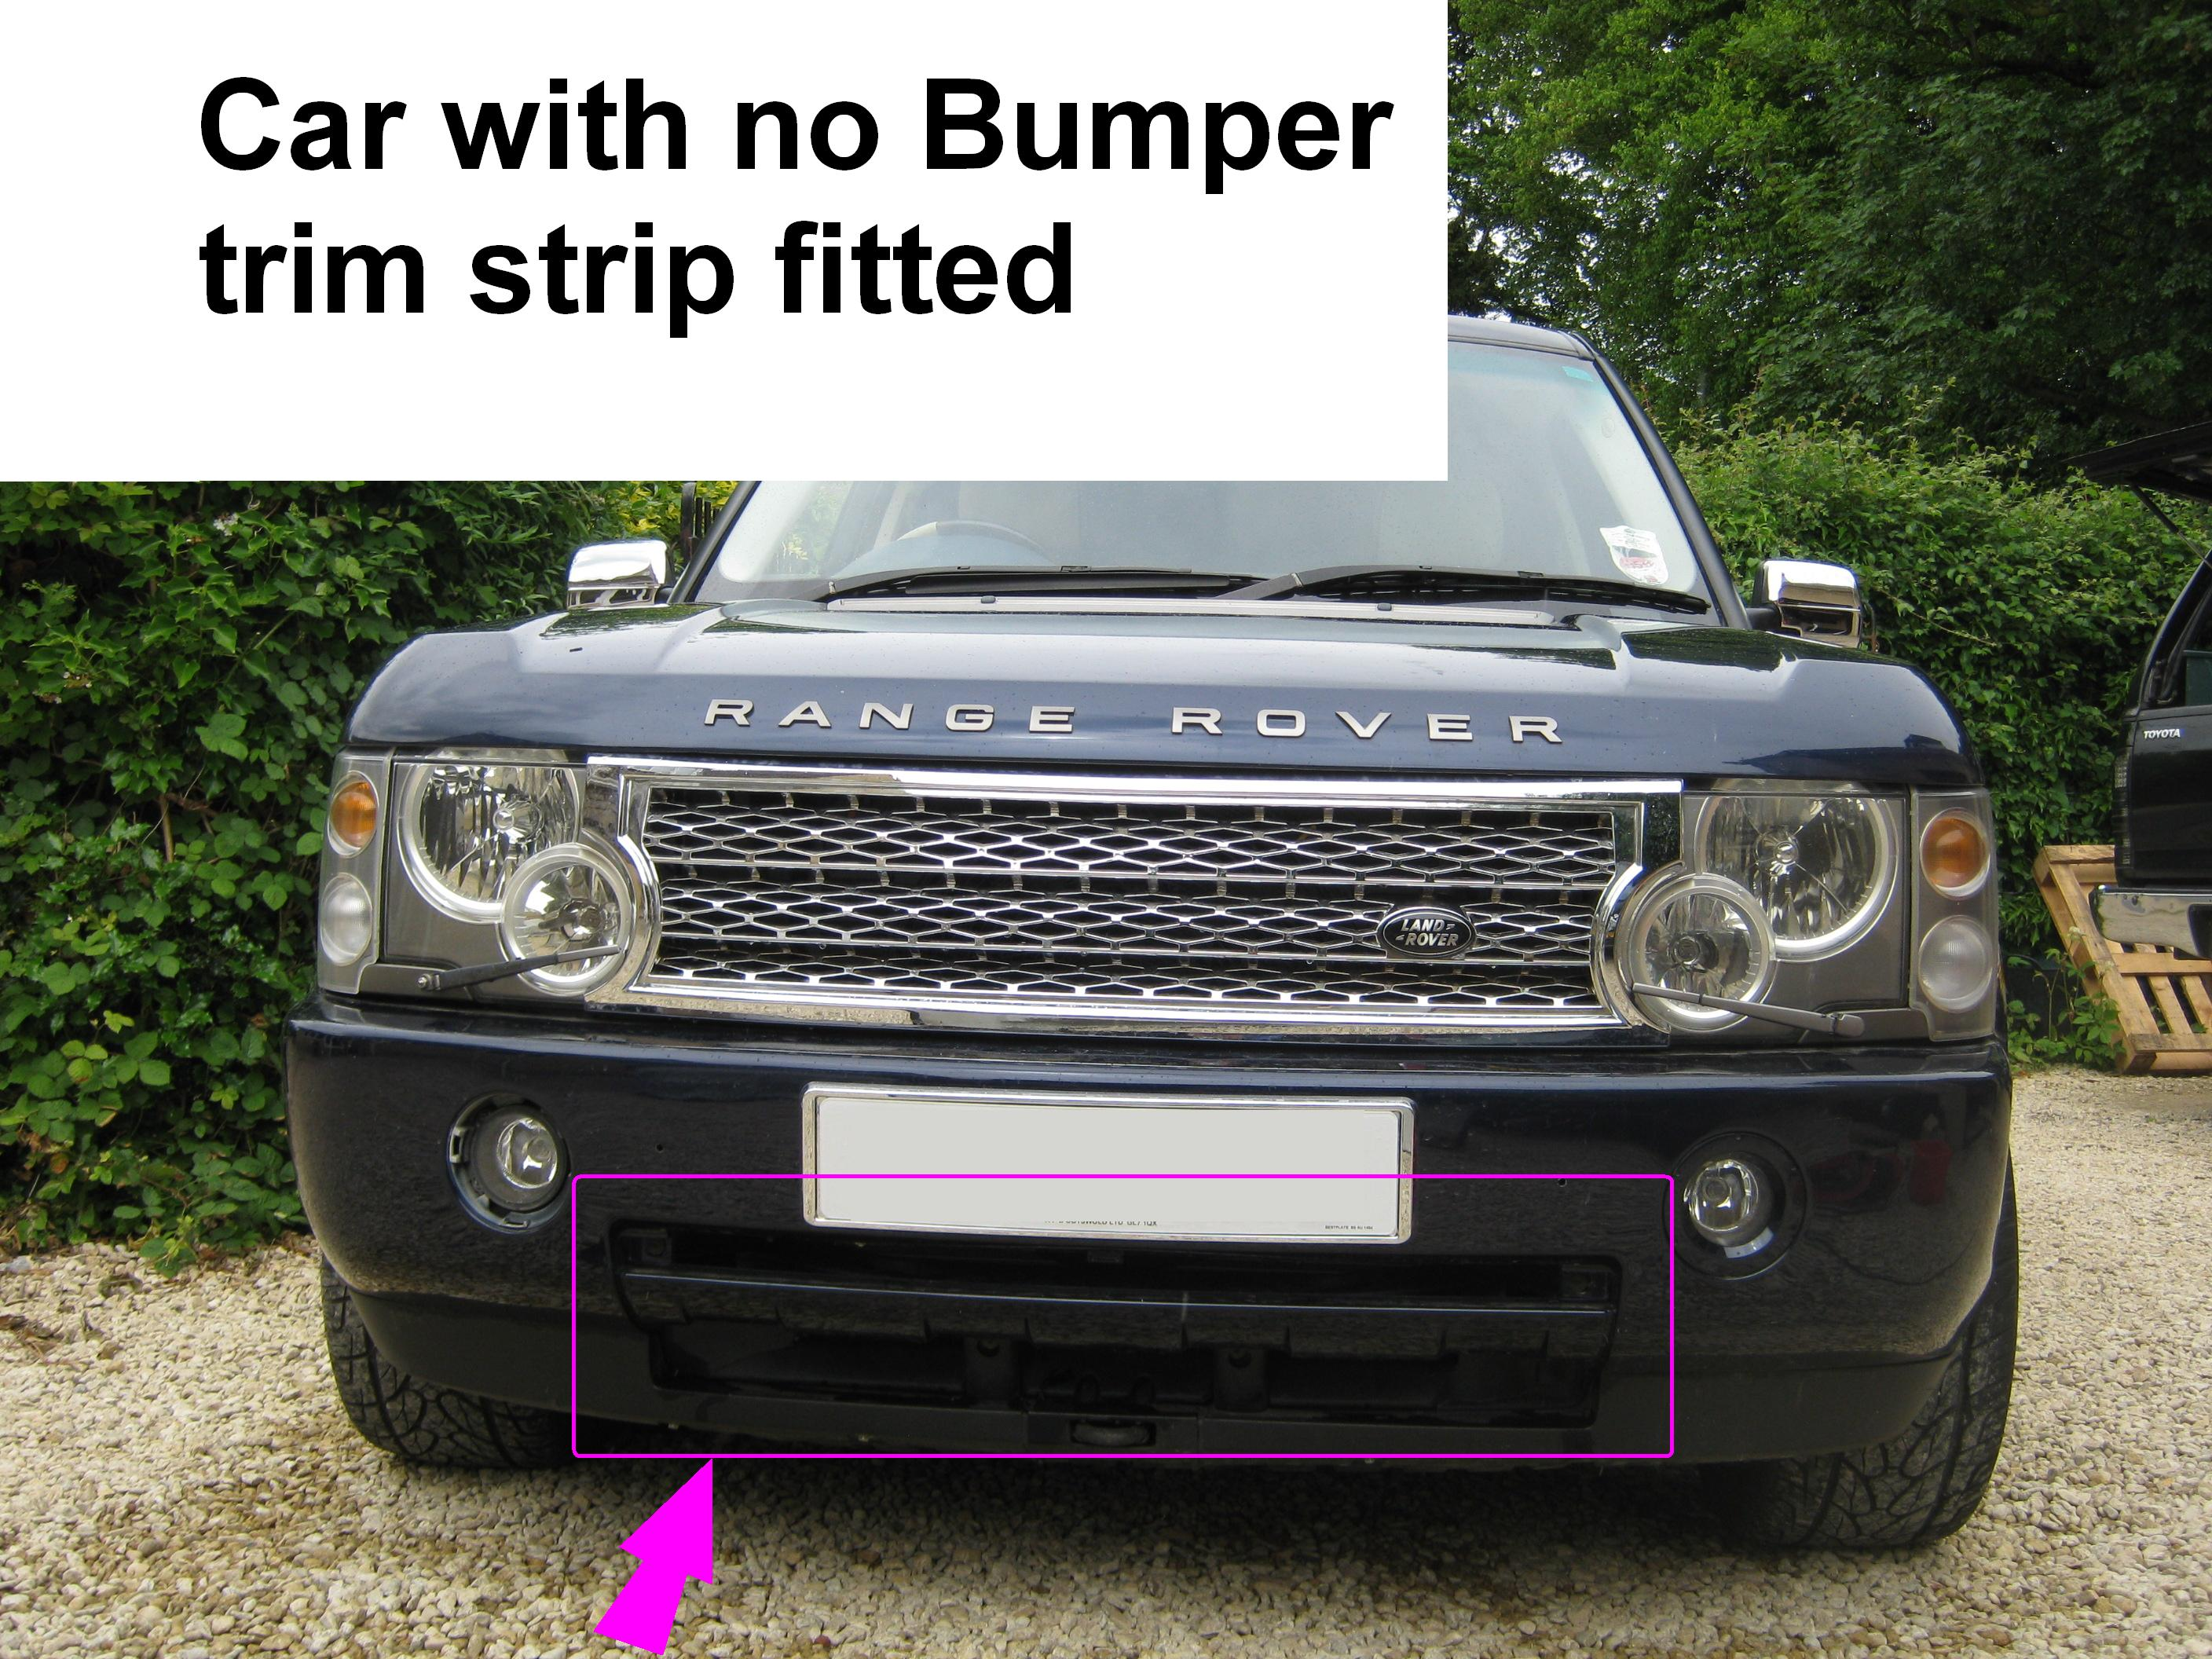 2010 look front bumper trim strip for Range Rover L322 Vogue